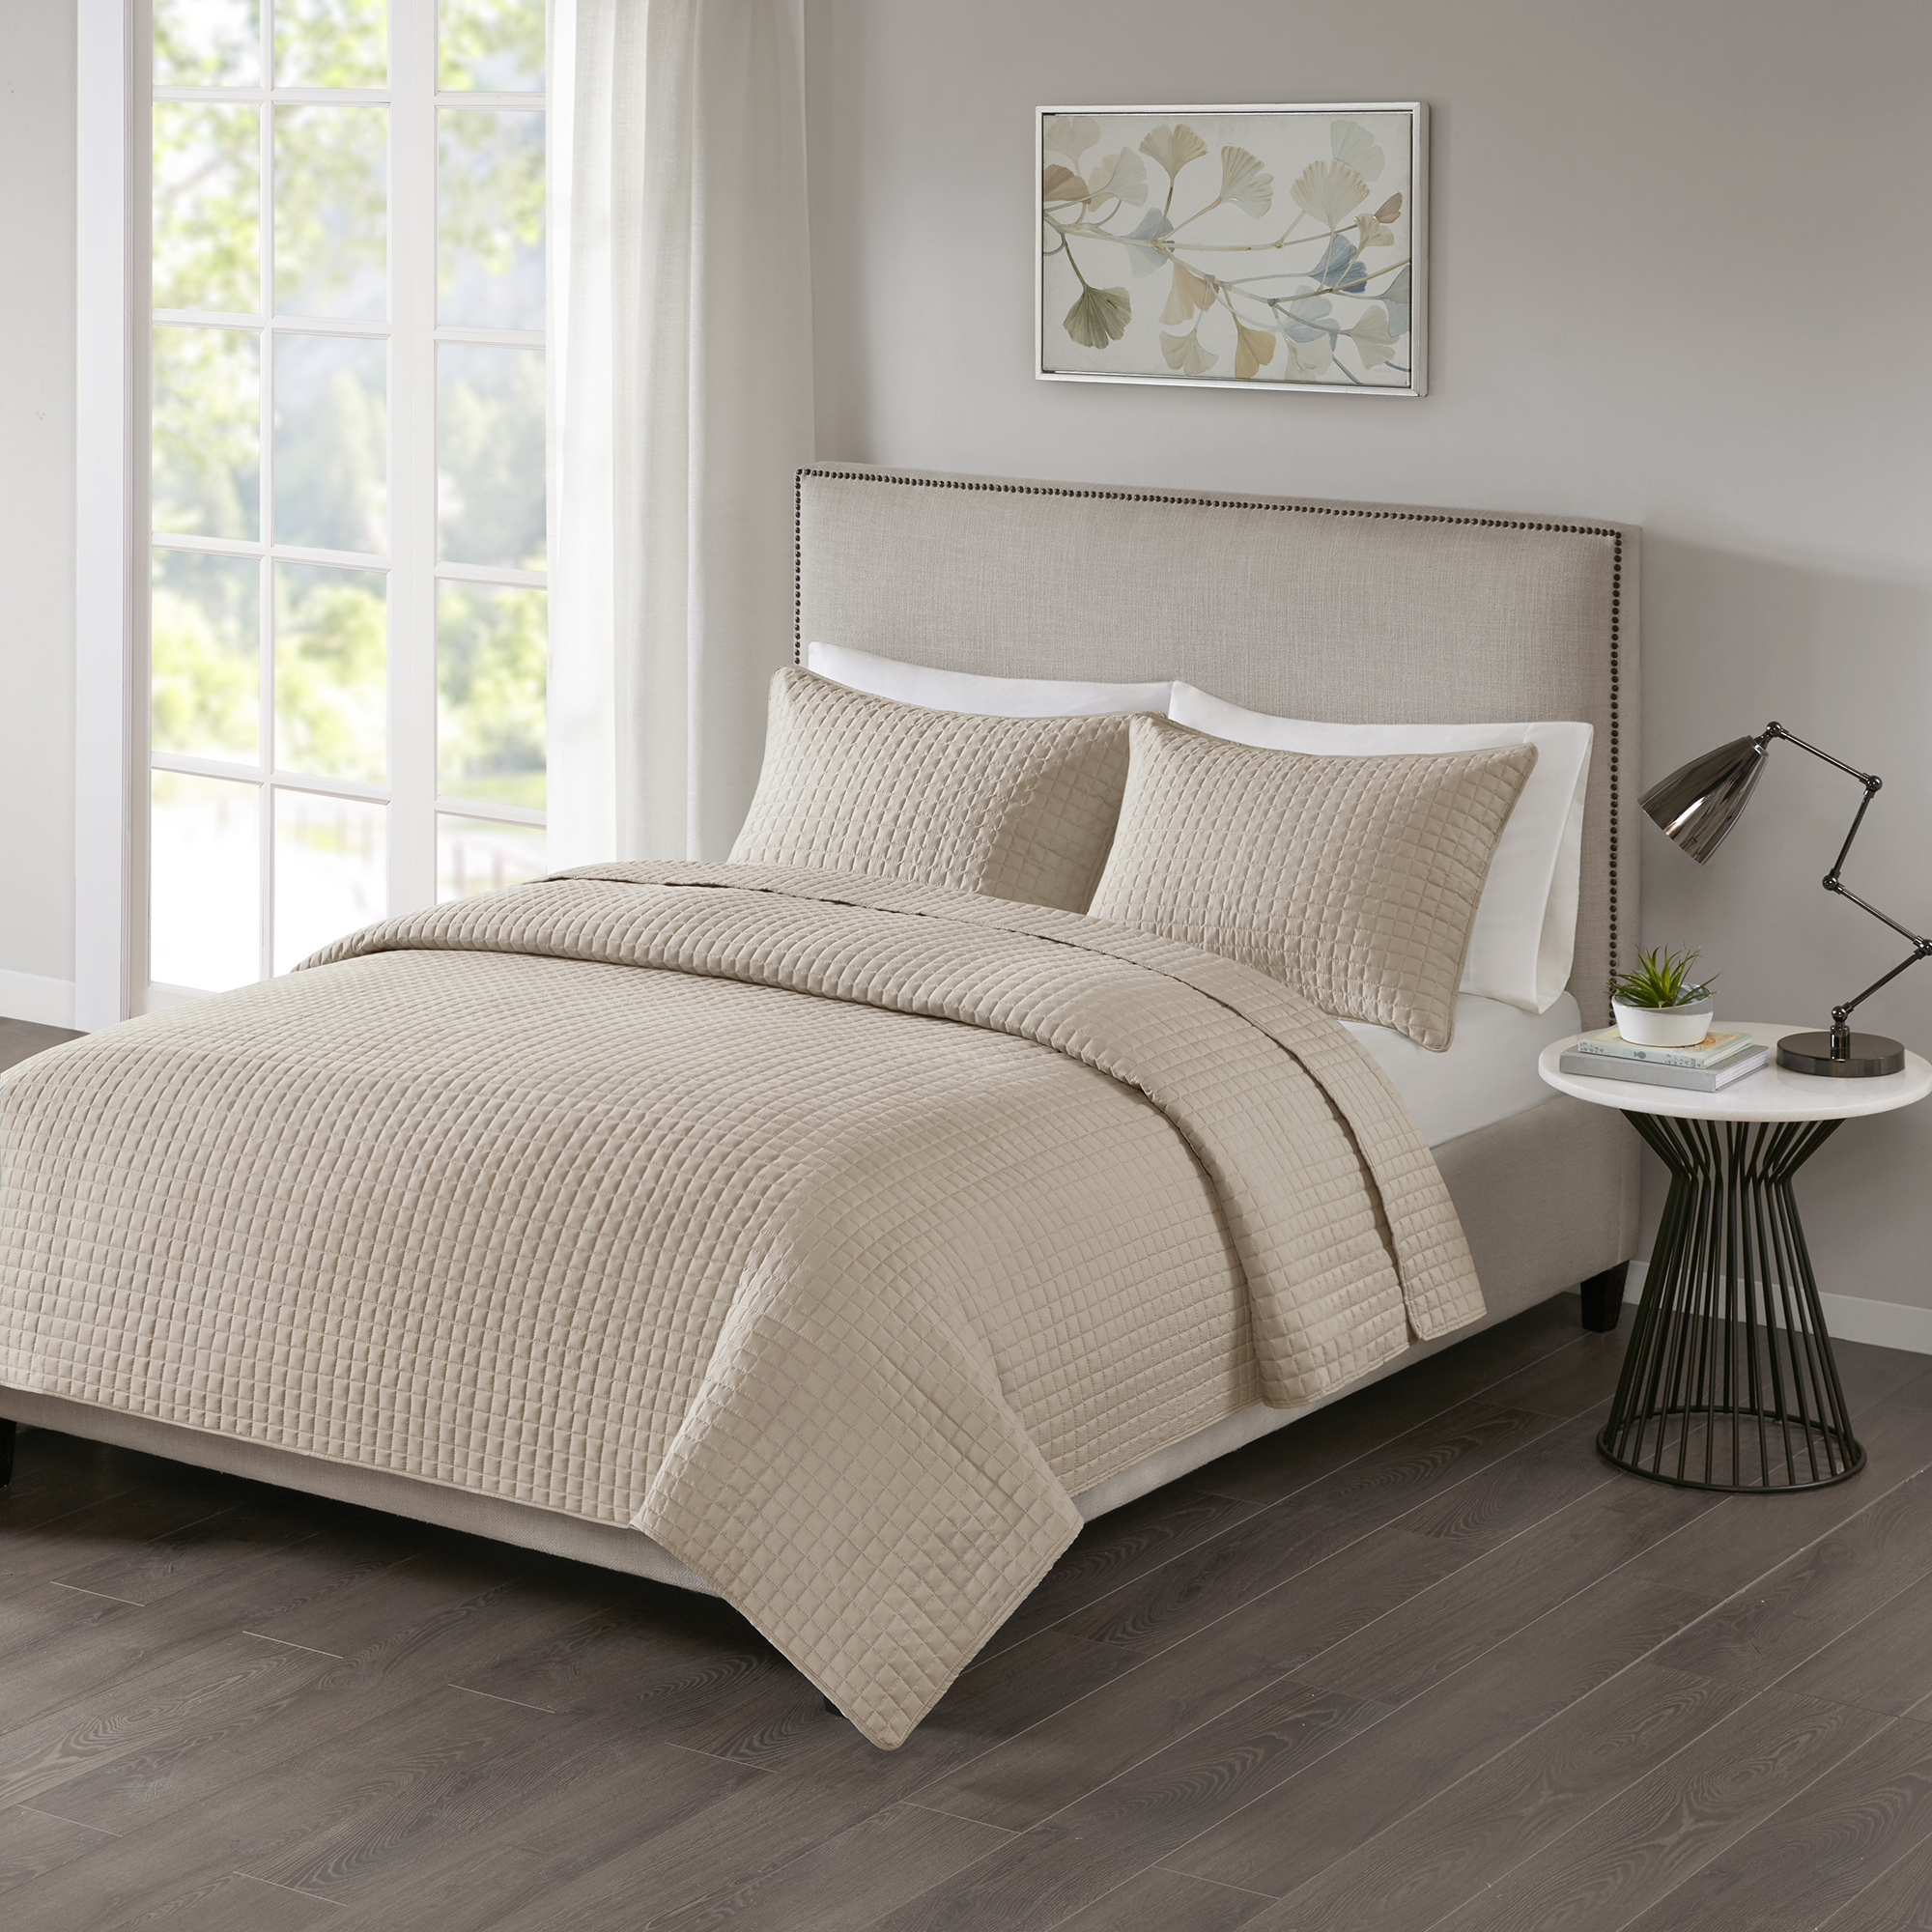 510 Design Trace 3 Piece Super Soft Quilted Coverlet Set